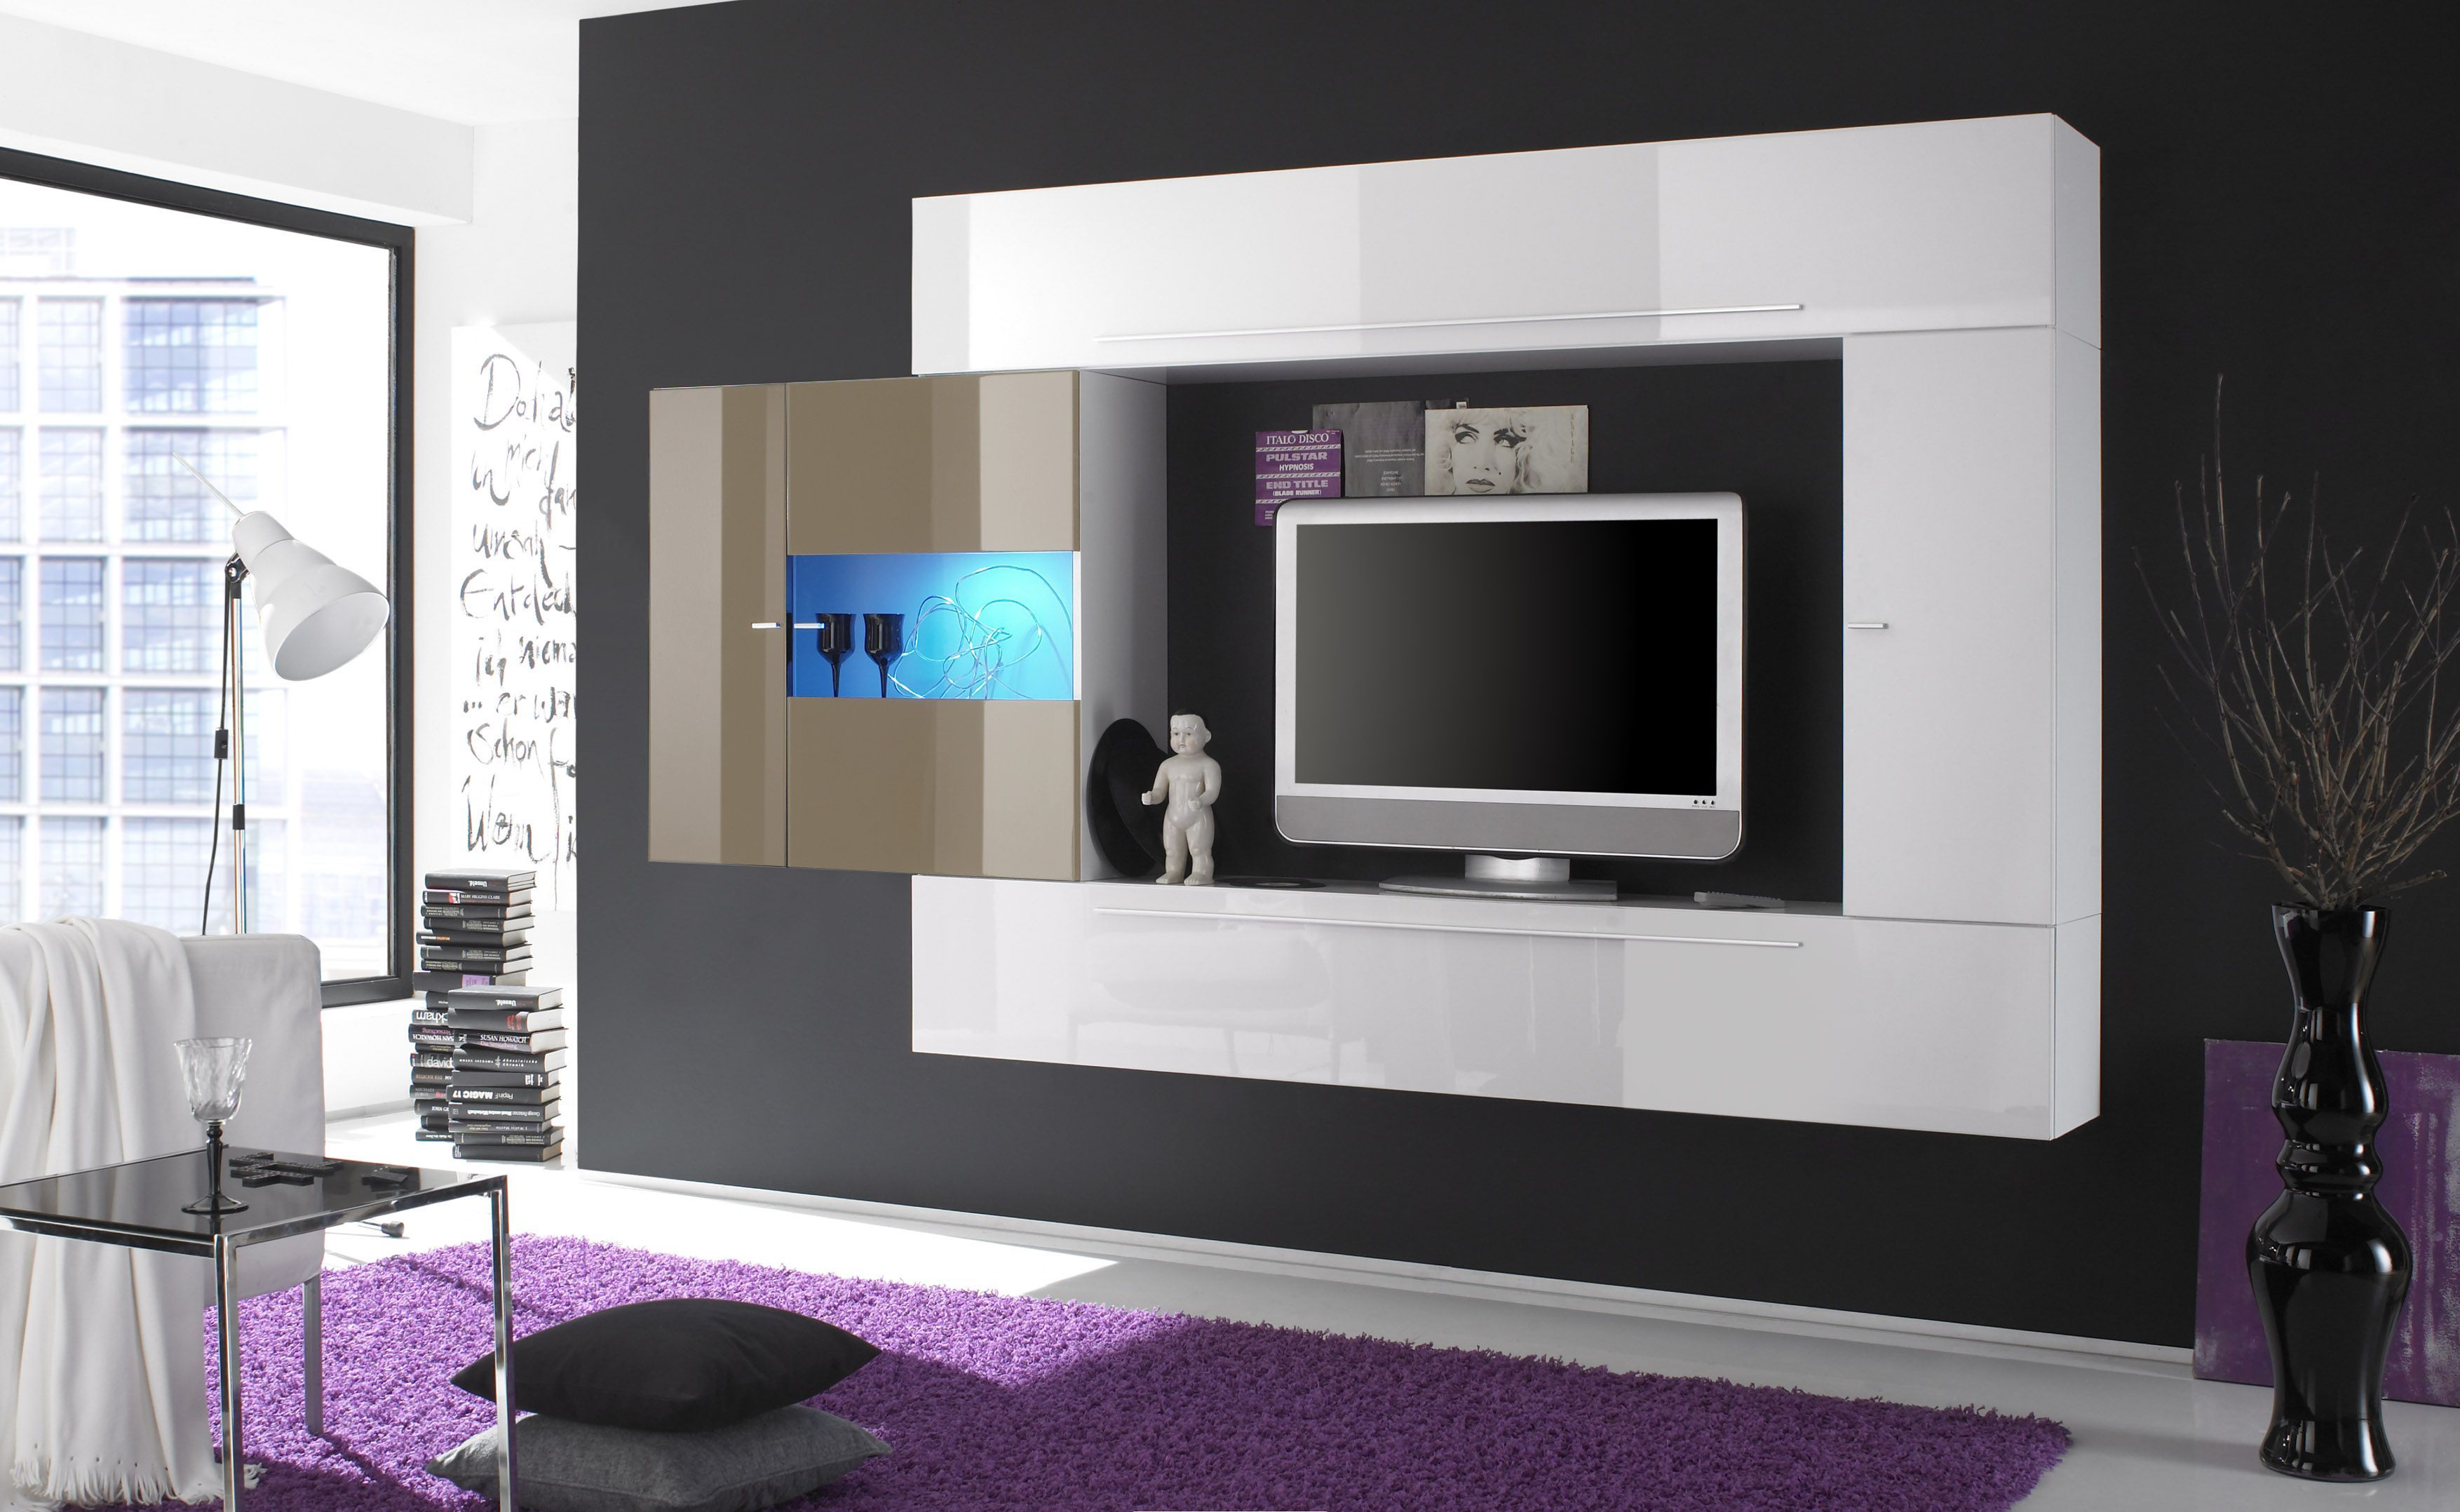 Handsome black living room design flat lcd tv decoration and cute purple carpet area also beside - Purple and black living room ideas ...